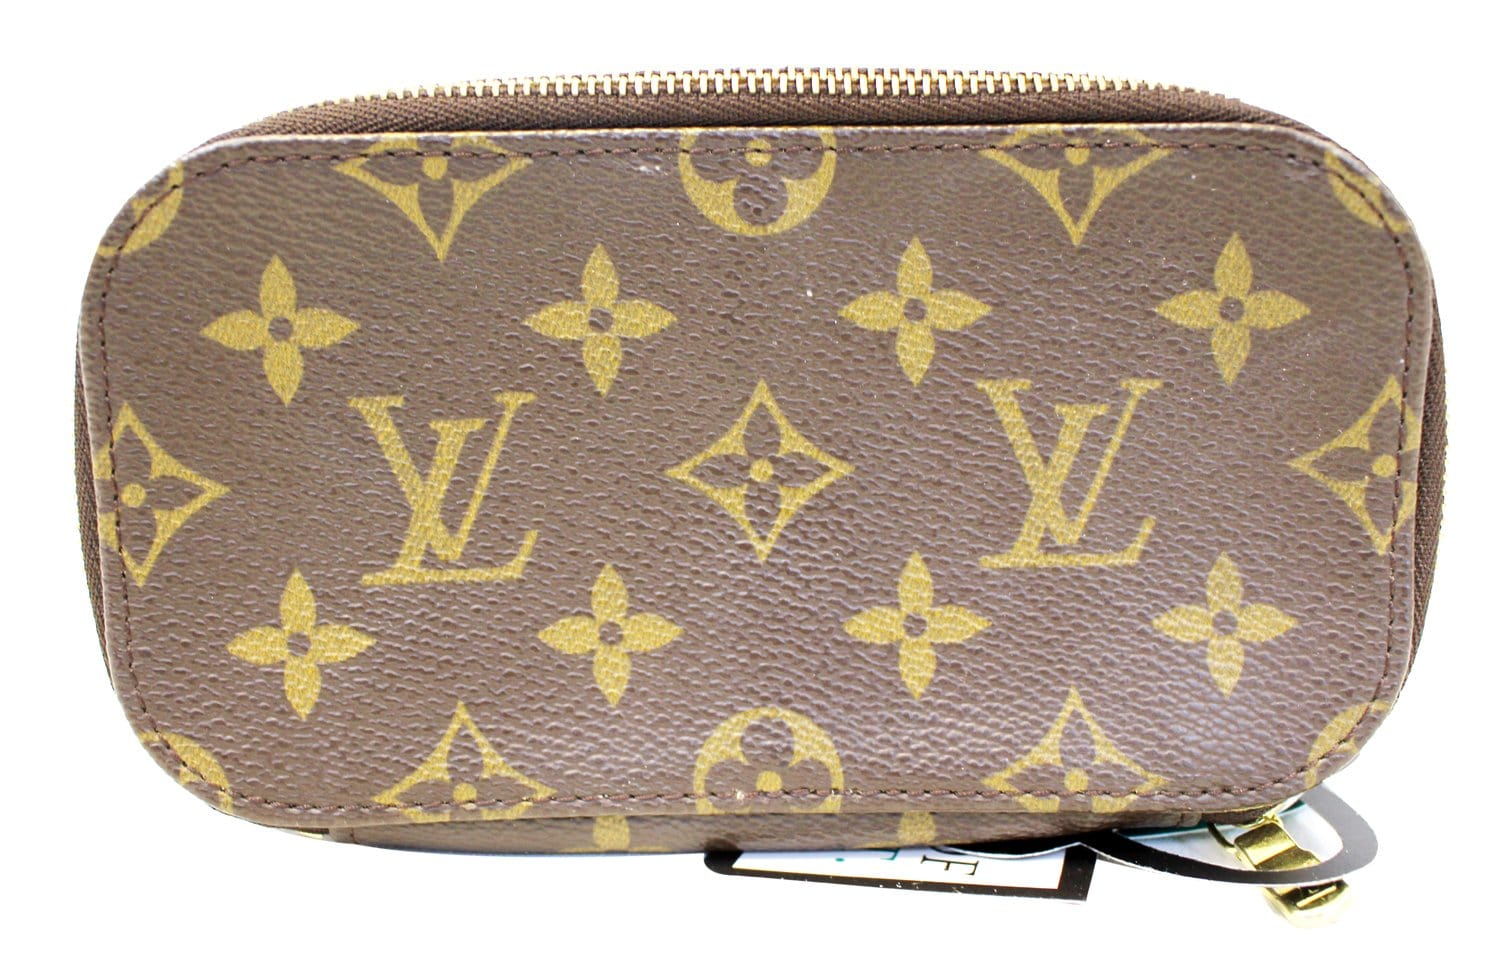 7a2a7f81abde LOUIS VUITTON Monogram Canvas Trousse Blush PM Cosmetic Case E4033